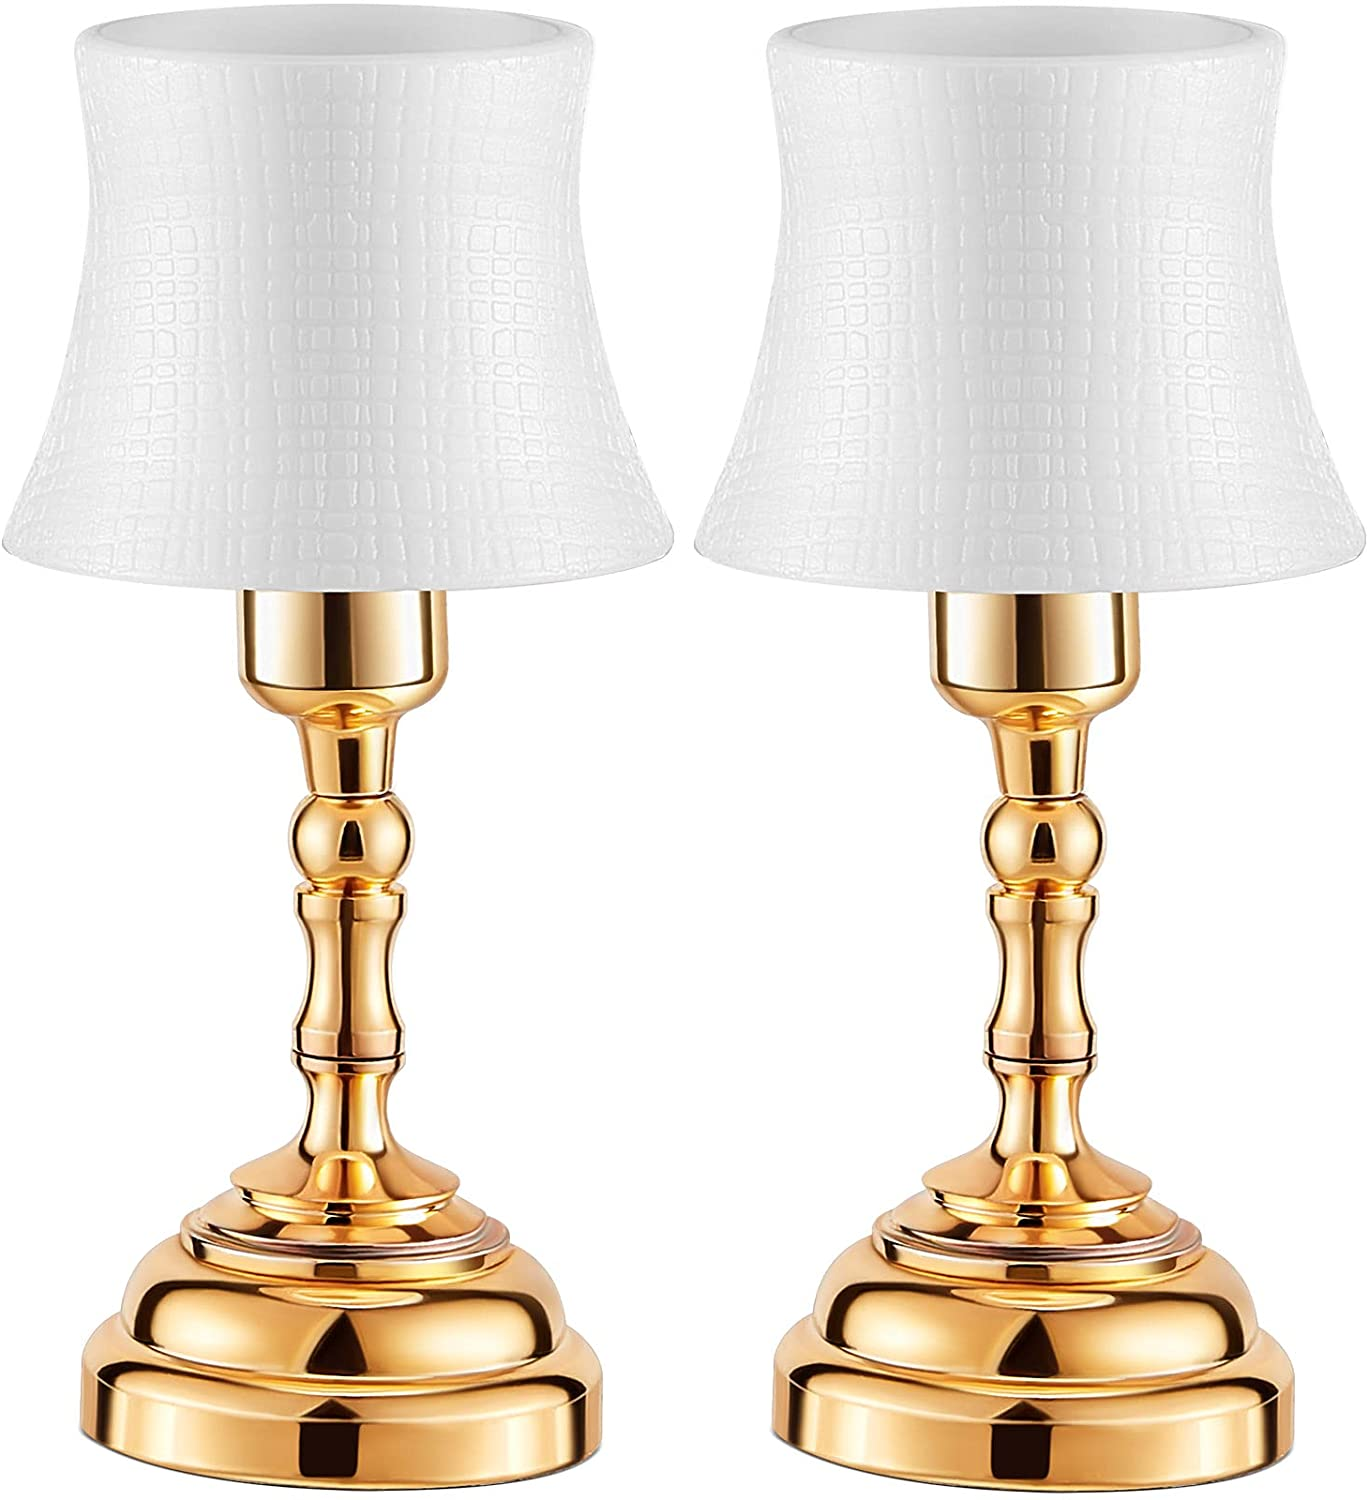 Mudder 2 Pieces Dollhouse Miniature Lamp LED Desk Lamp Mini Light Dollhouse Decoration Accessories Battery Operated with ON/Off Switch and Lamp Shade (Table Lamp)